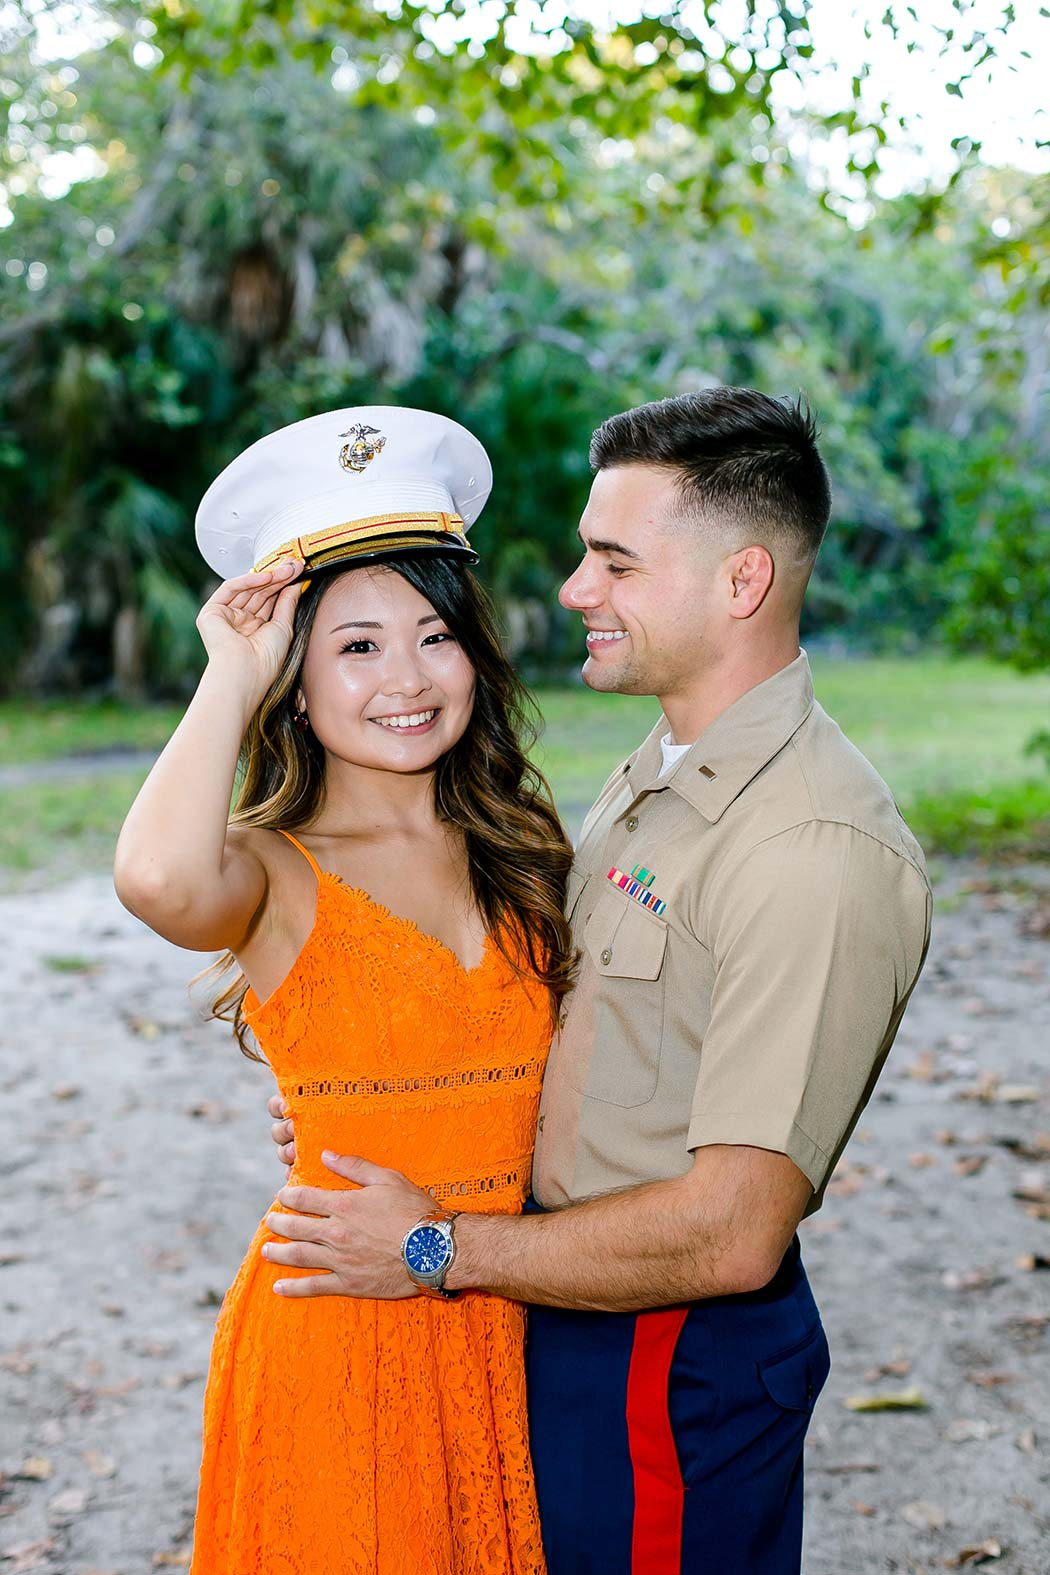 engagement photoshoot with orange dress | military engagement photoshoot | girl wears military cap during engagement session